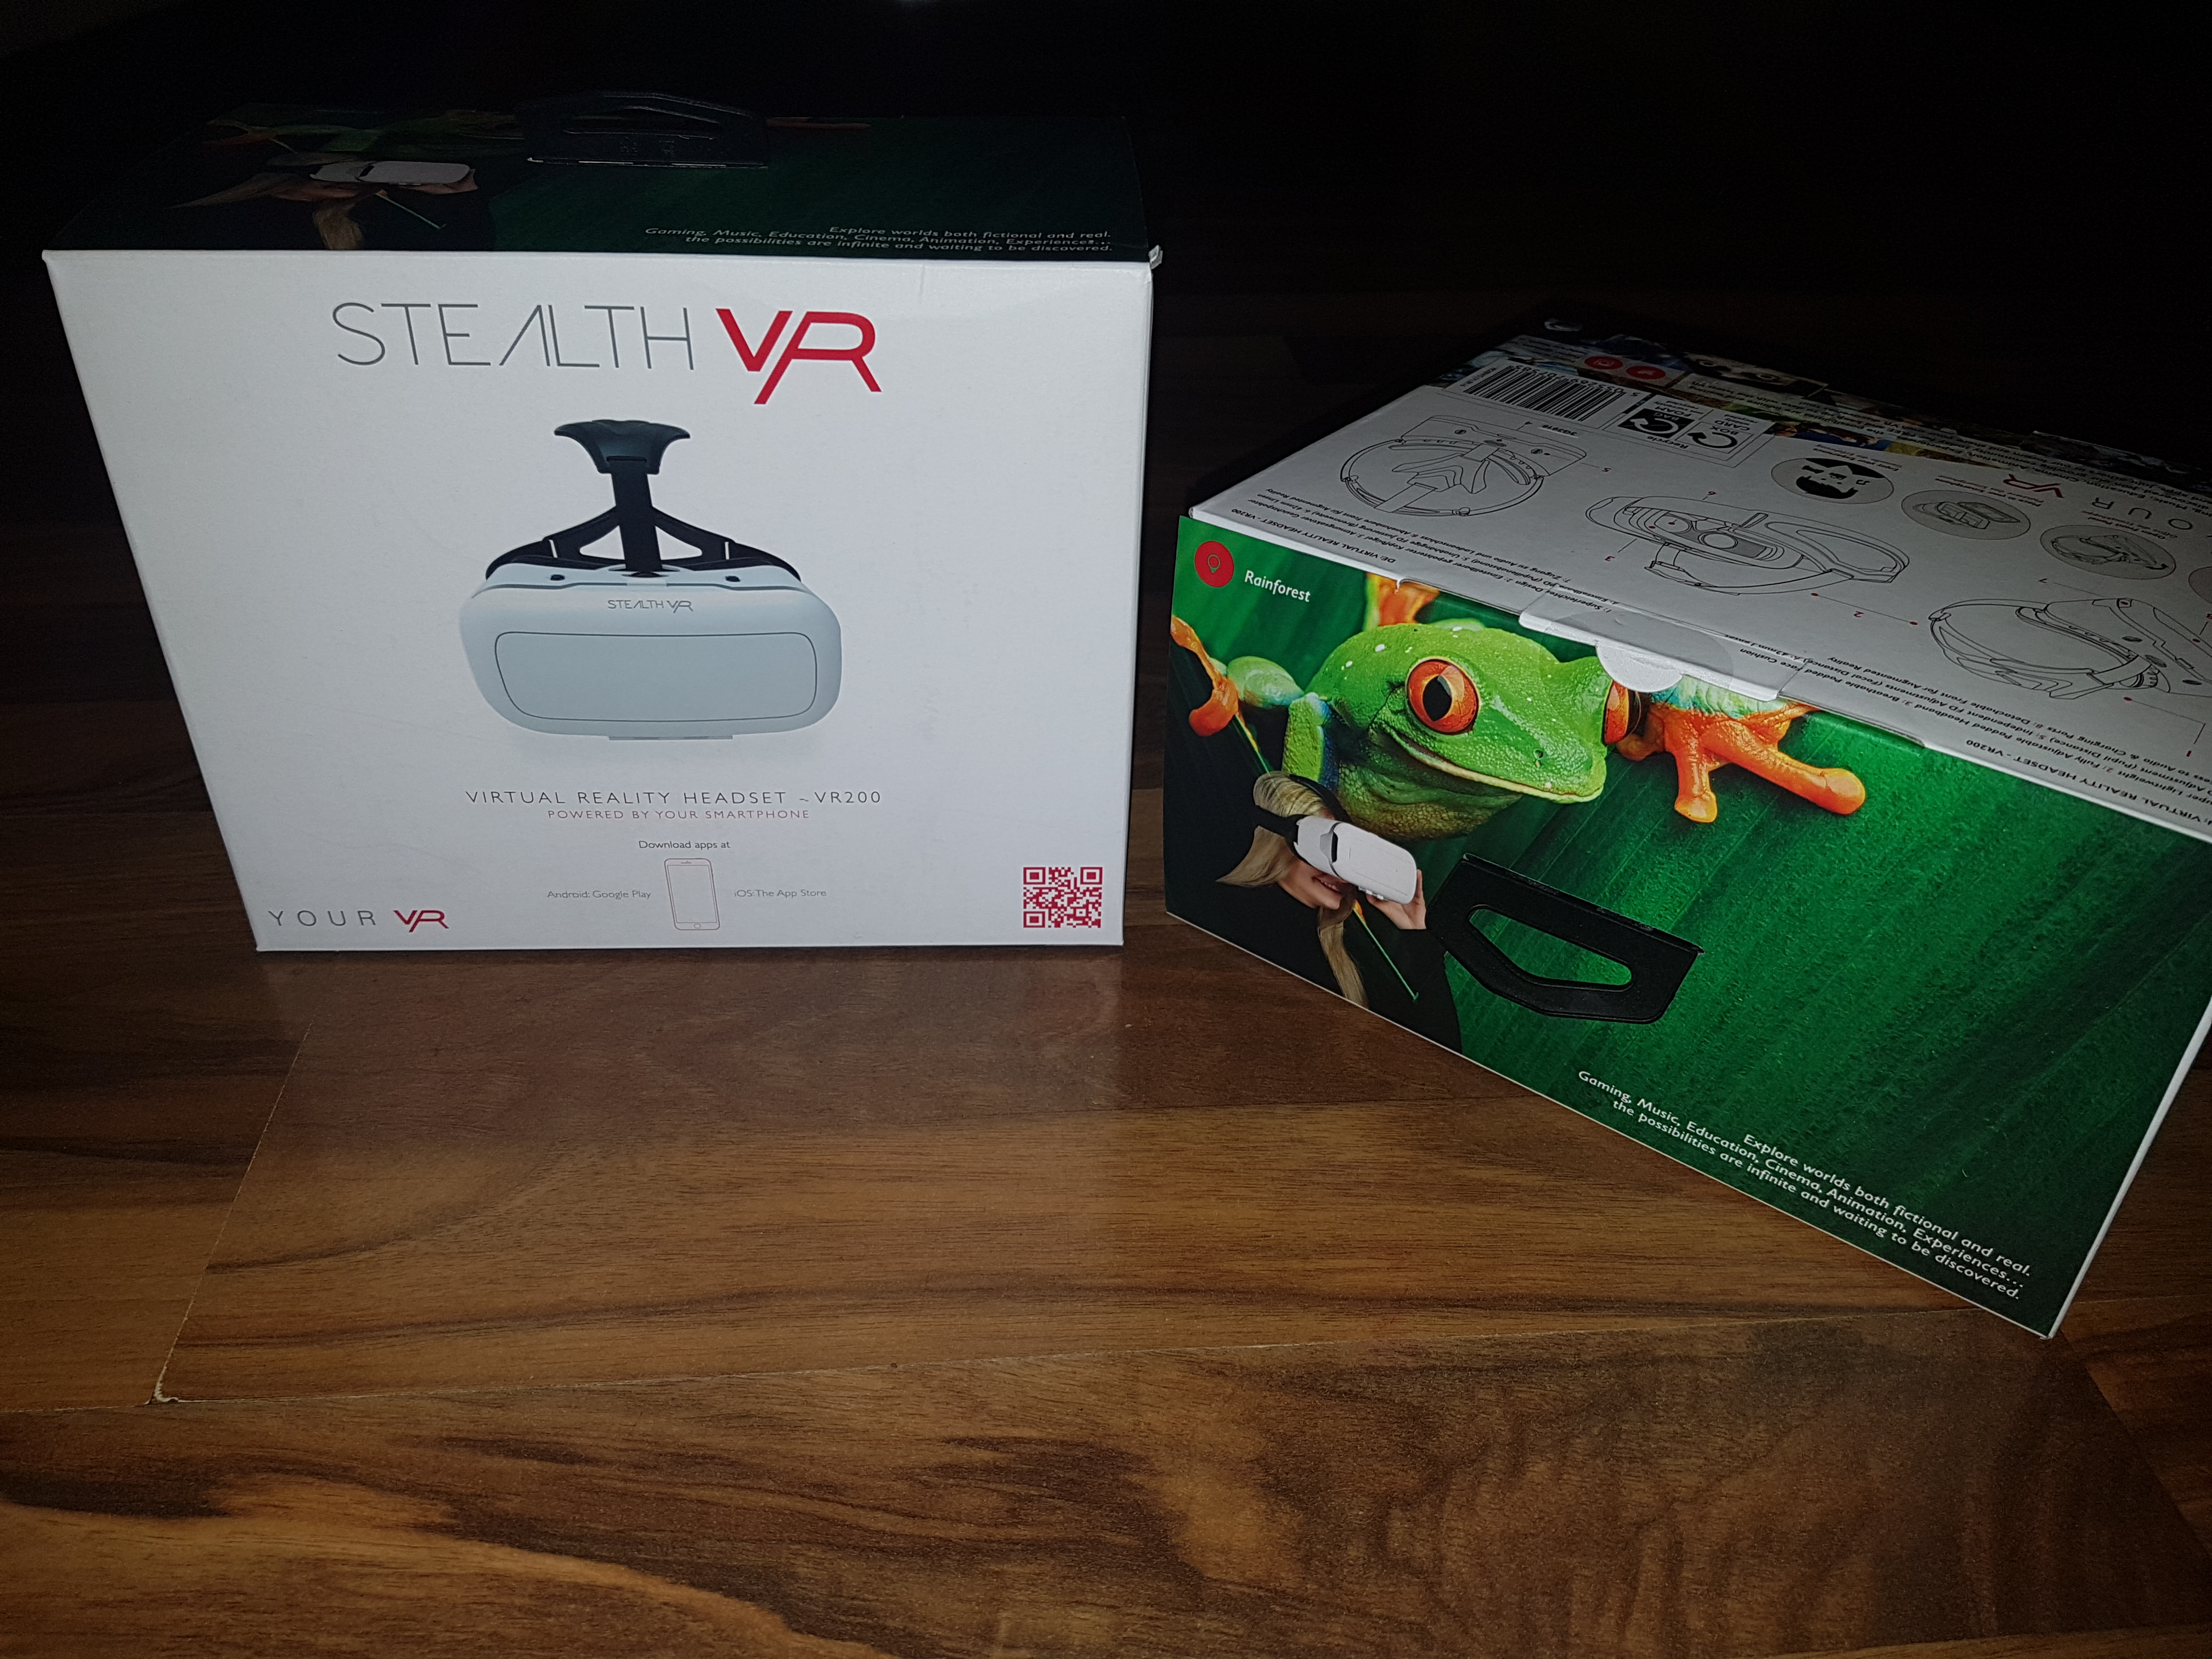 Win 1 of 2 @STEALTH_VR Headsets. Just RT and reply with